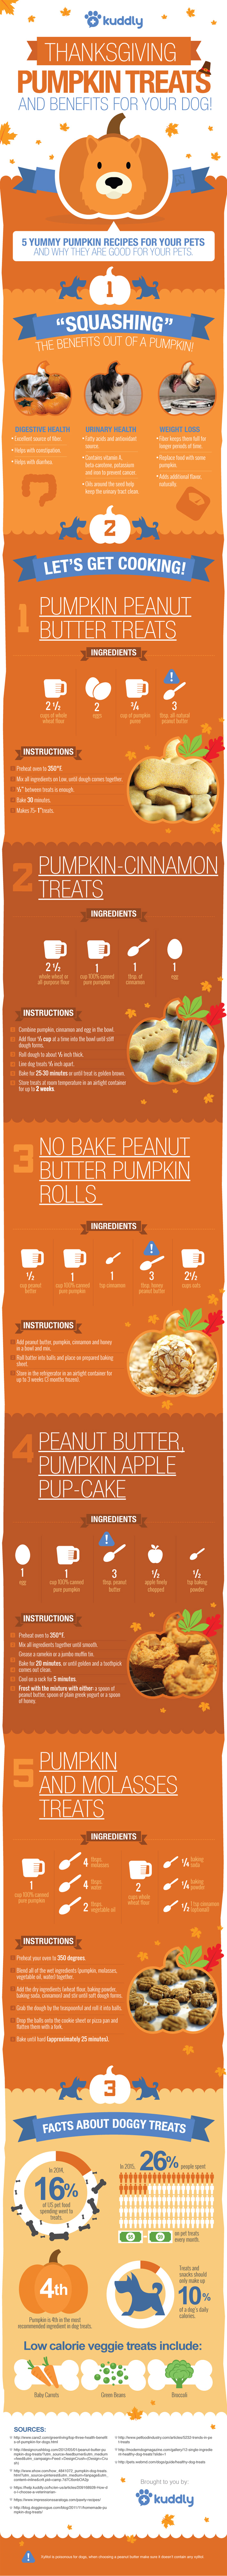 5 Pumpkin Treat Recipes for Your Dog